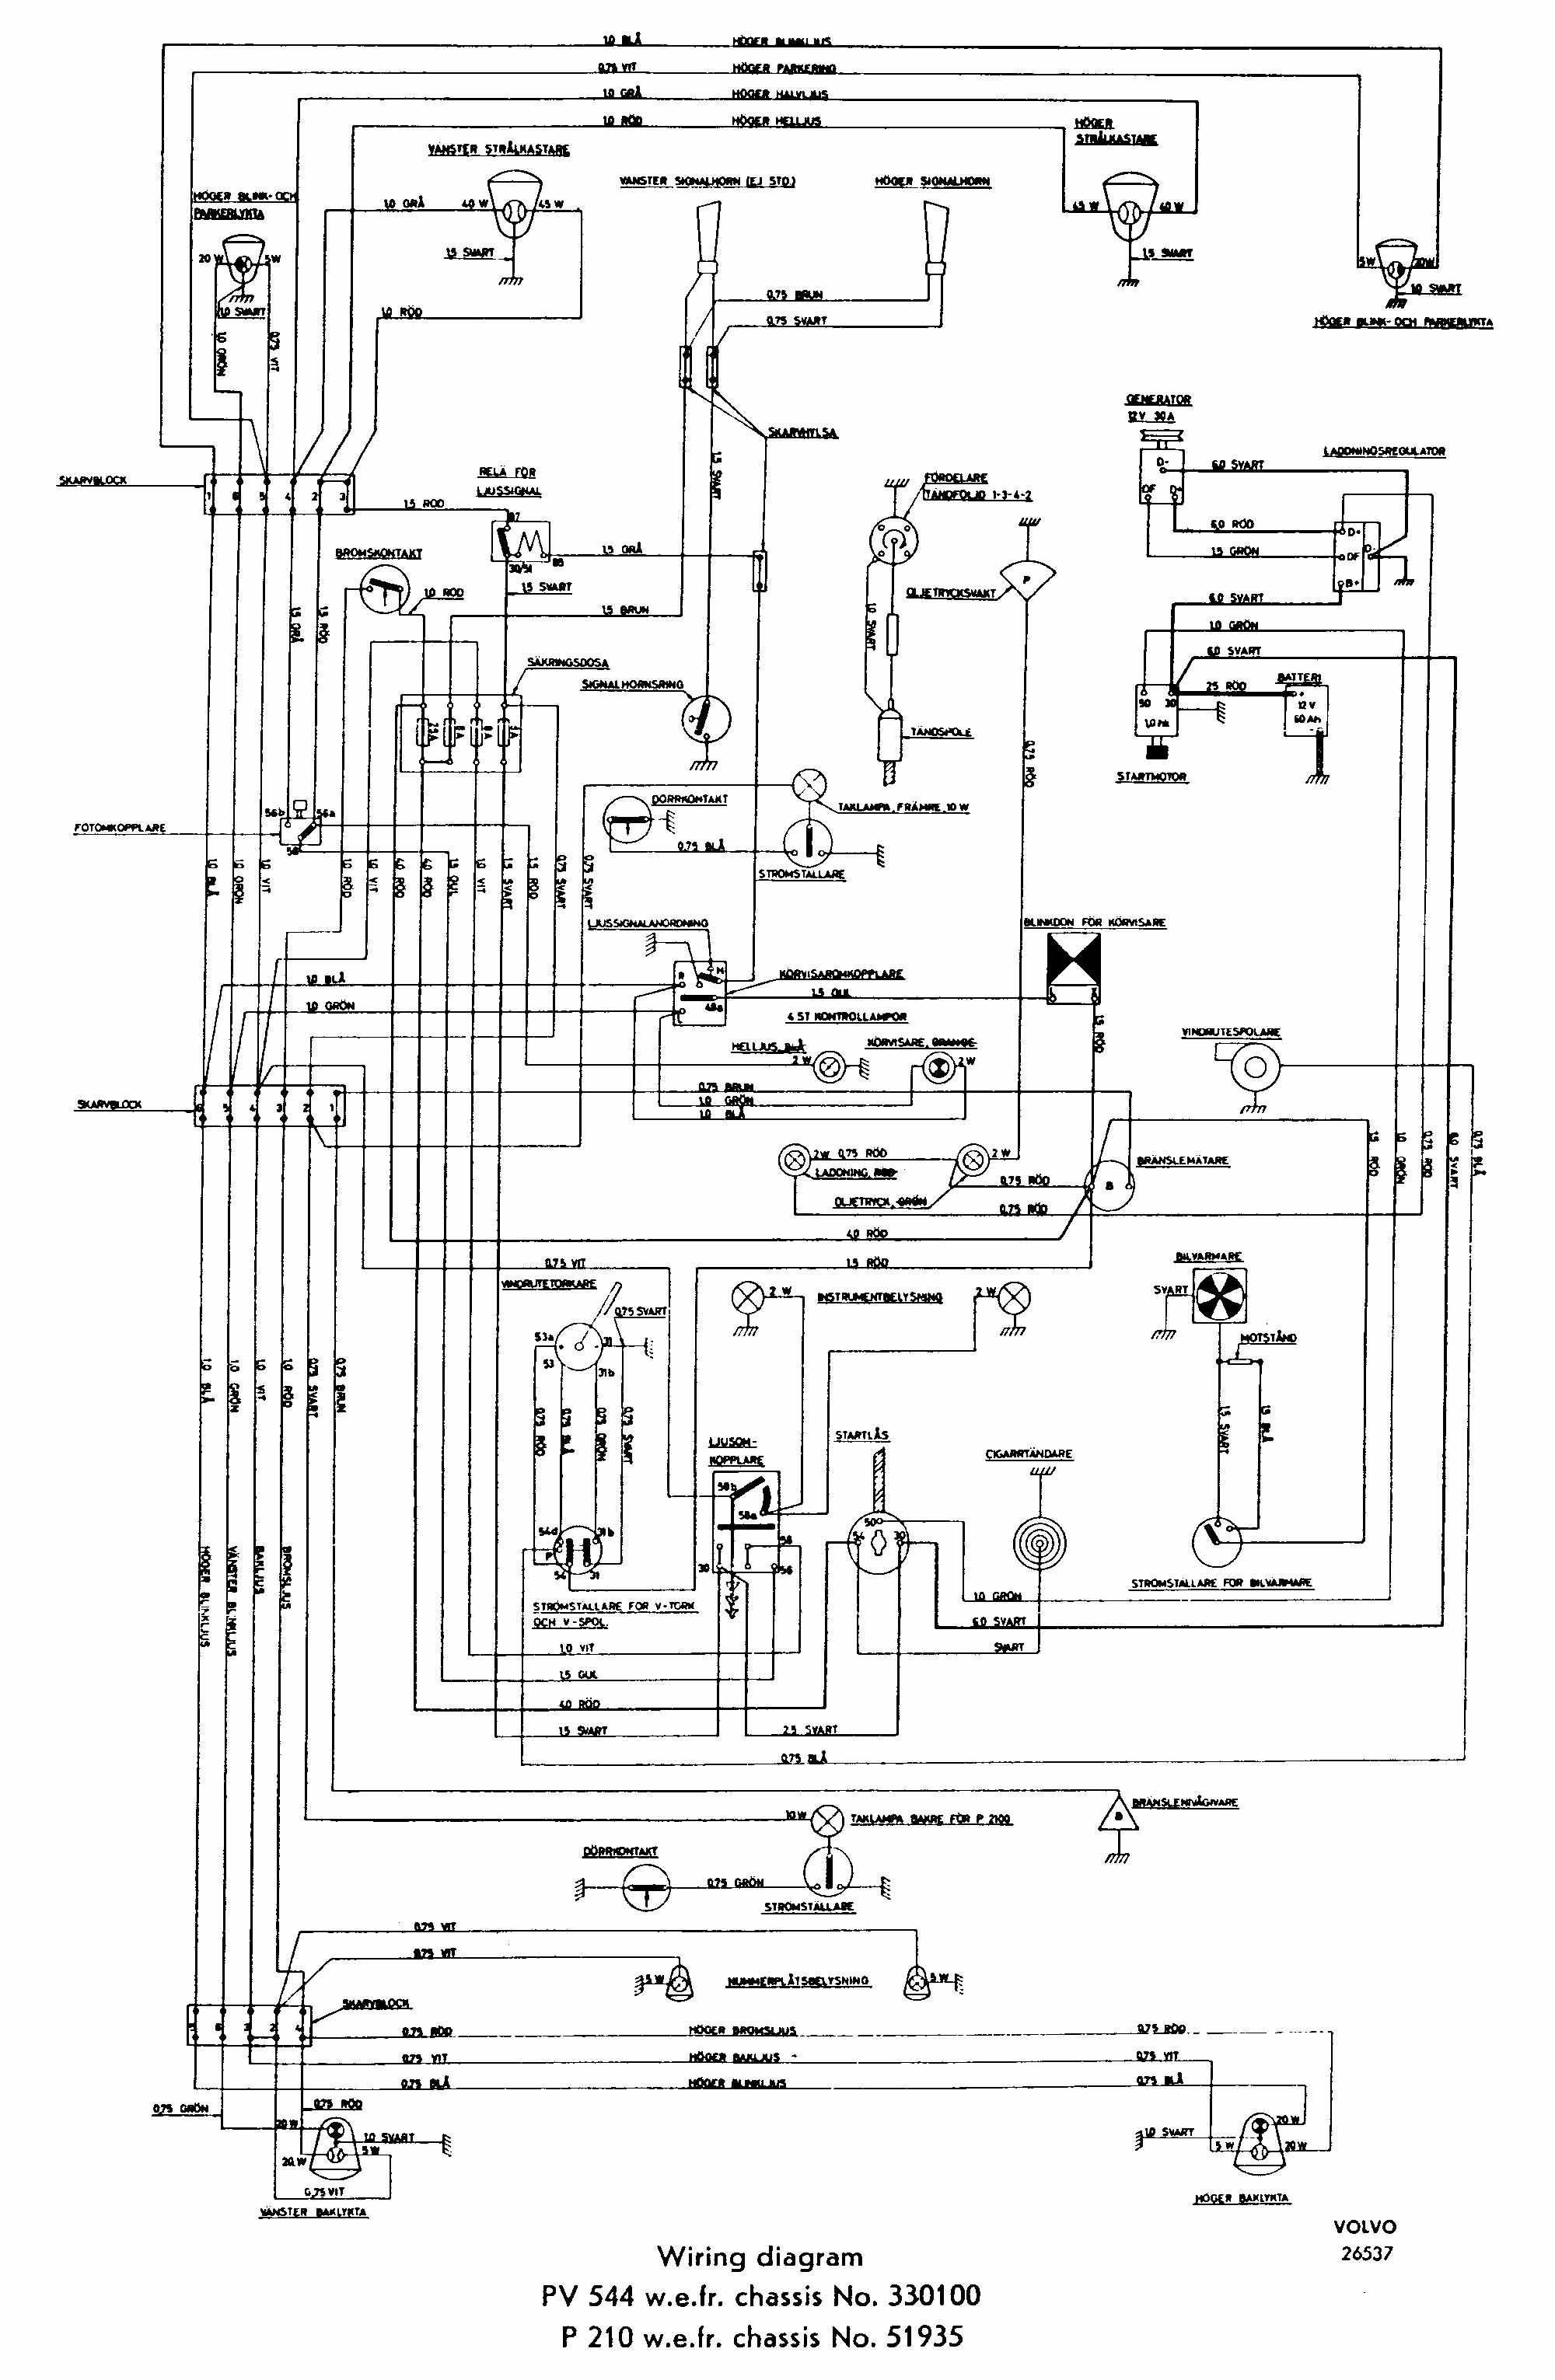 Volvo Truck Fuse Panel Diagram Wiring Schematic